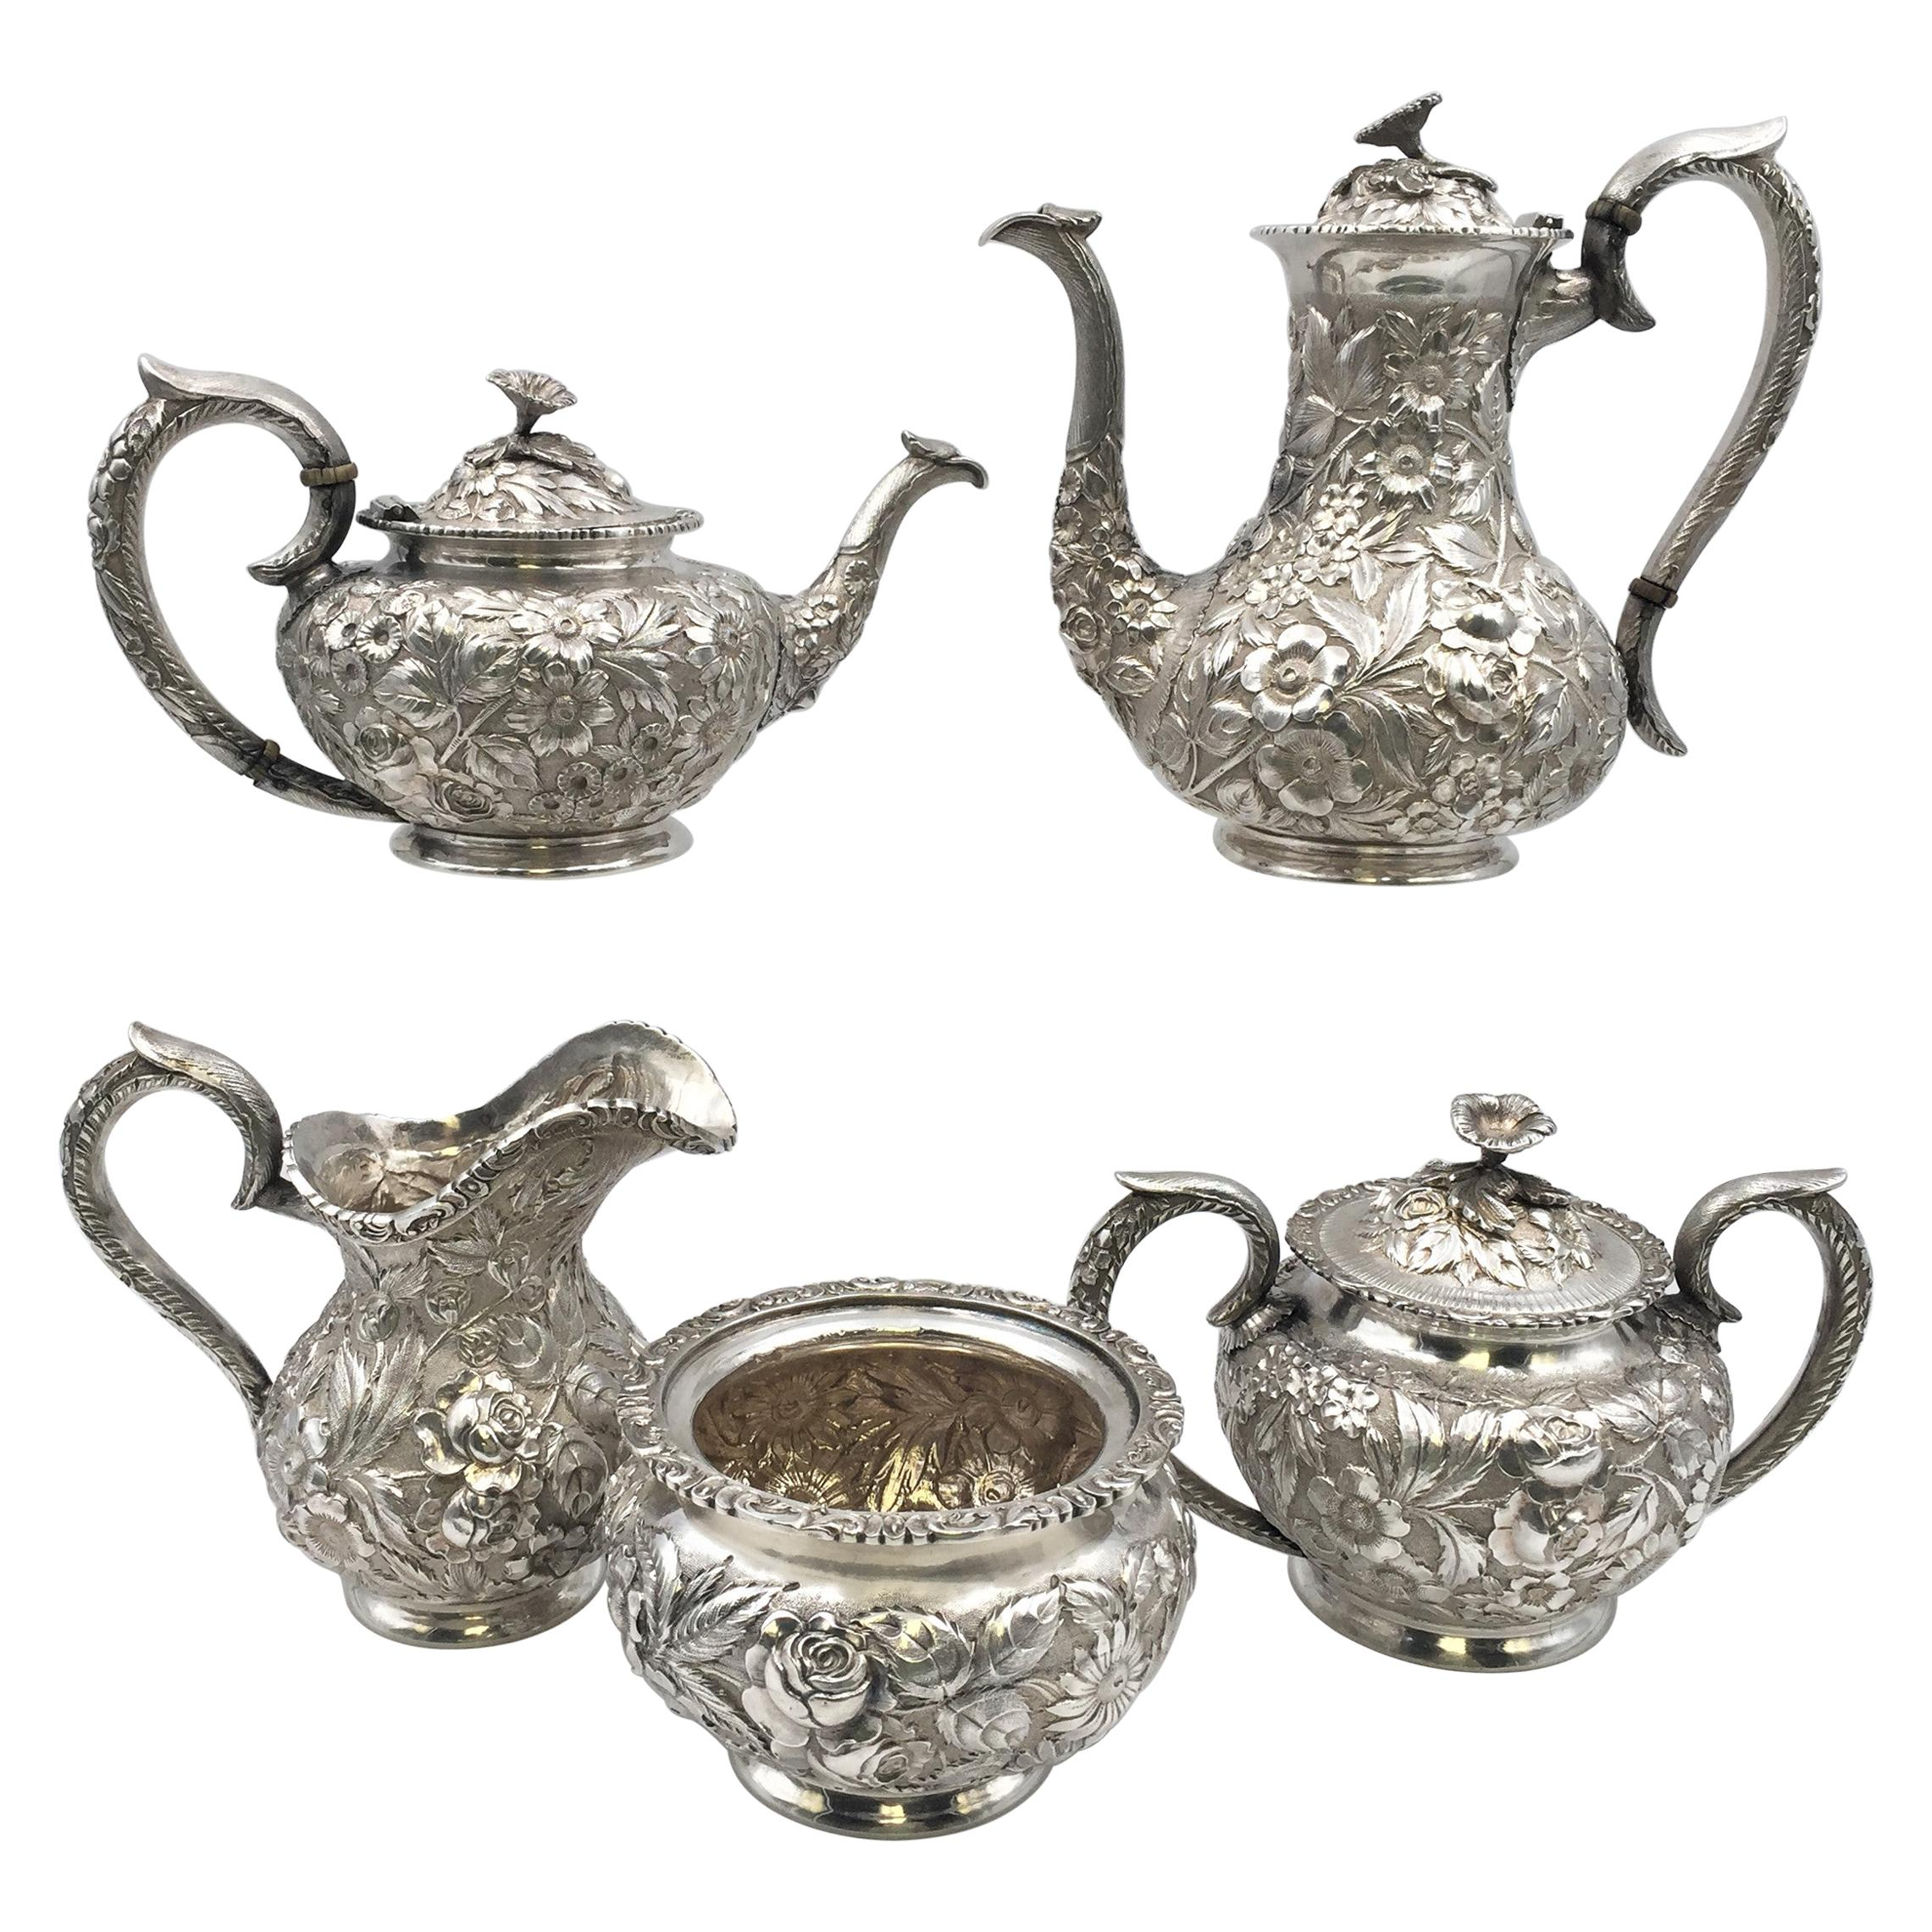 Schofield Sterling Silver Repousse 5-Piece Tea Coffee Set For City of Baltimore